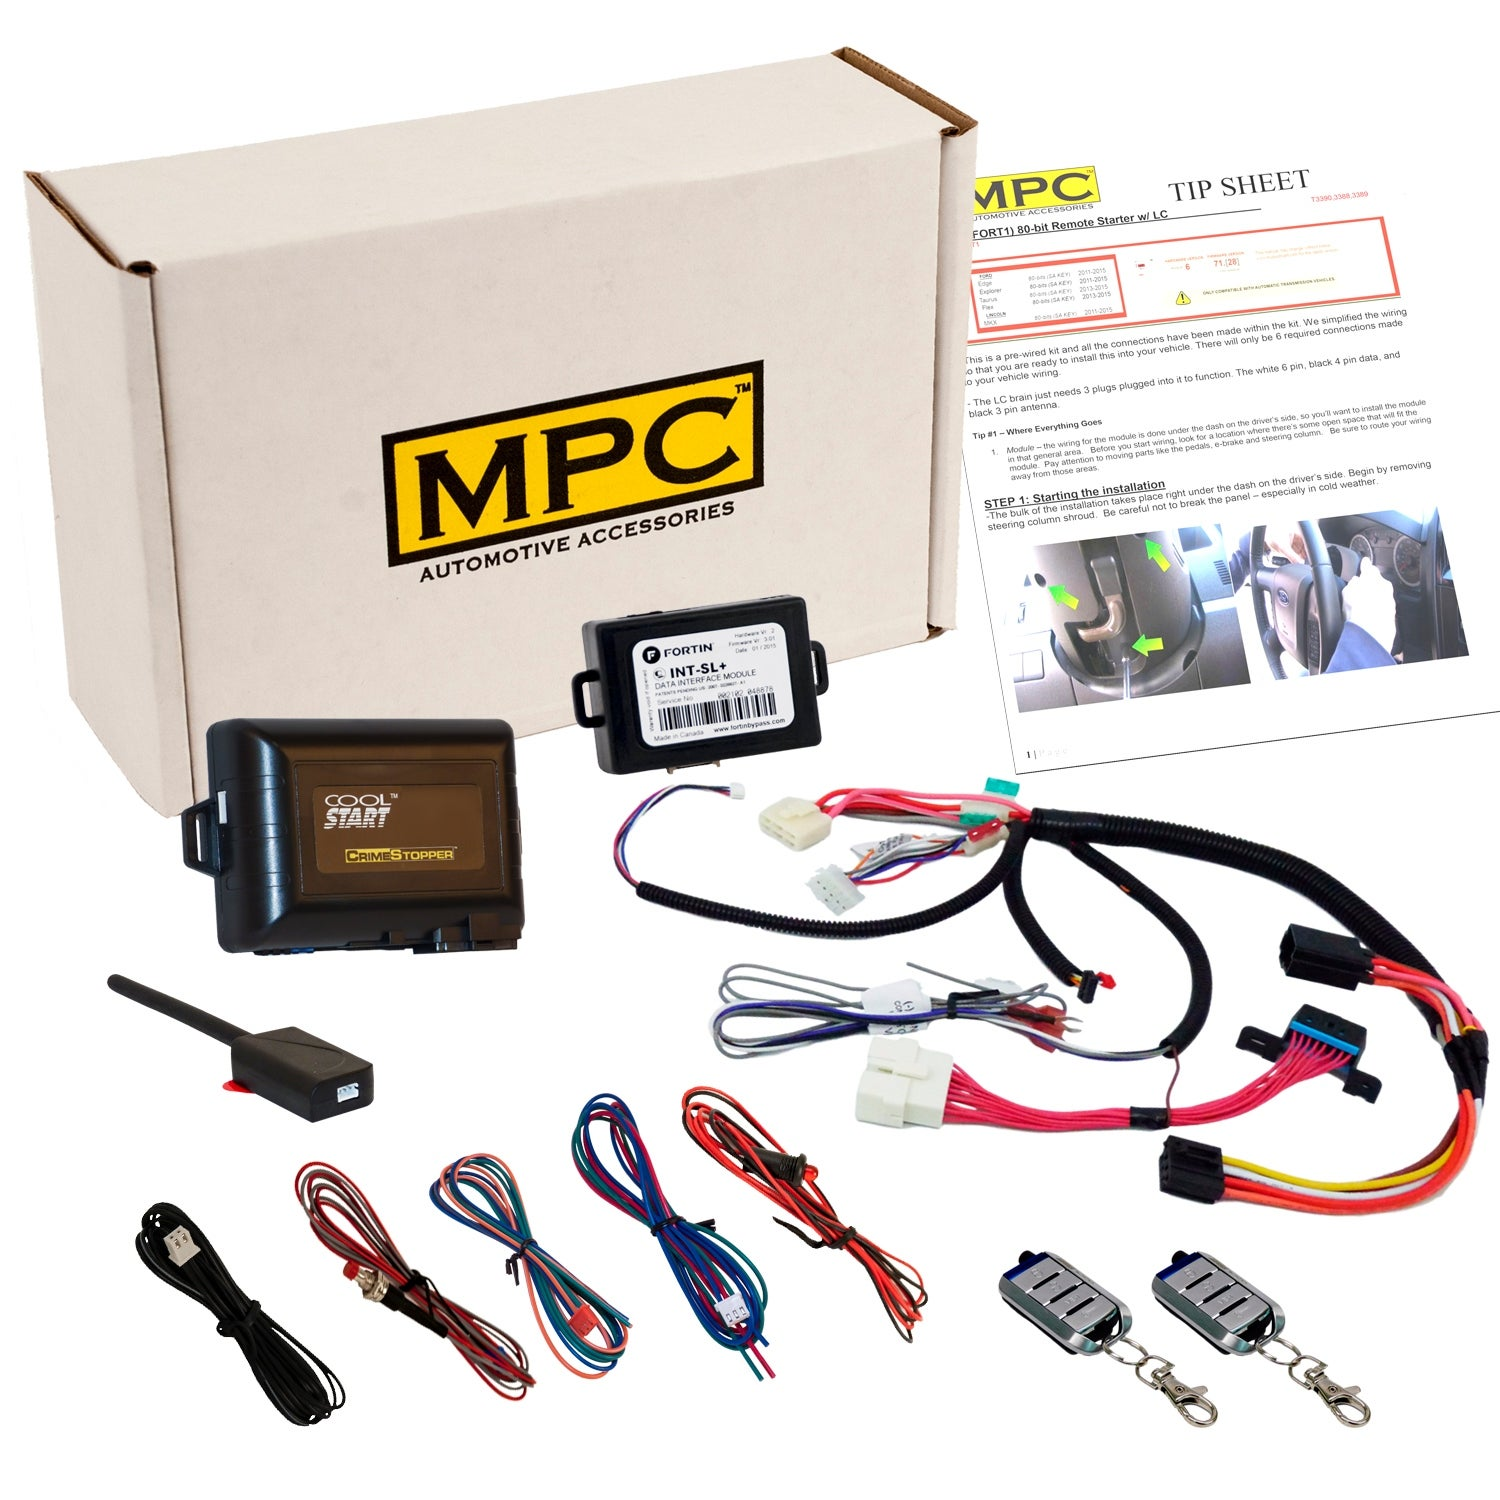 2006 Chevy Silverado Remote Start Install All About Chevrolet Crimestopper Wiring Diagram Source Shop Complete 2 4 Button Keyless Entry Kit For 2003